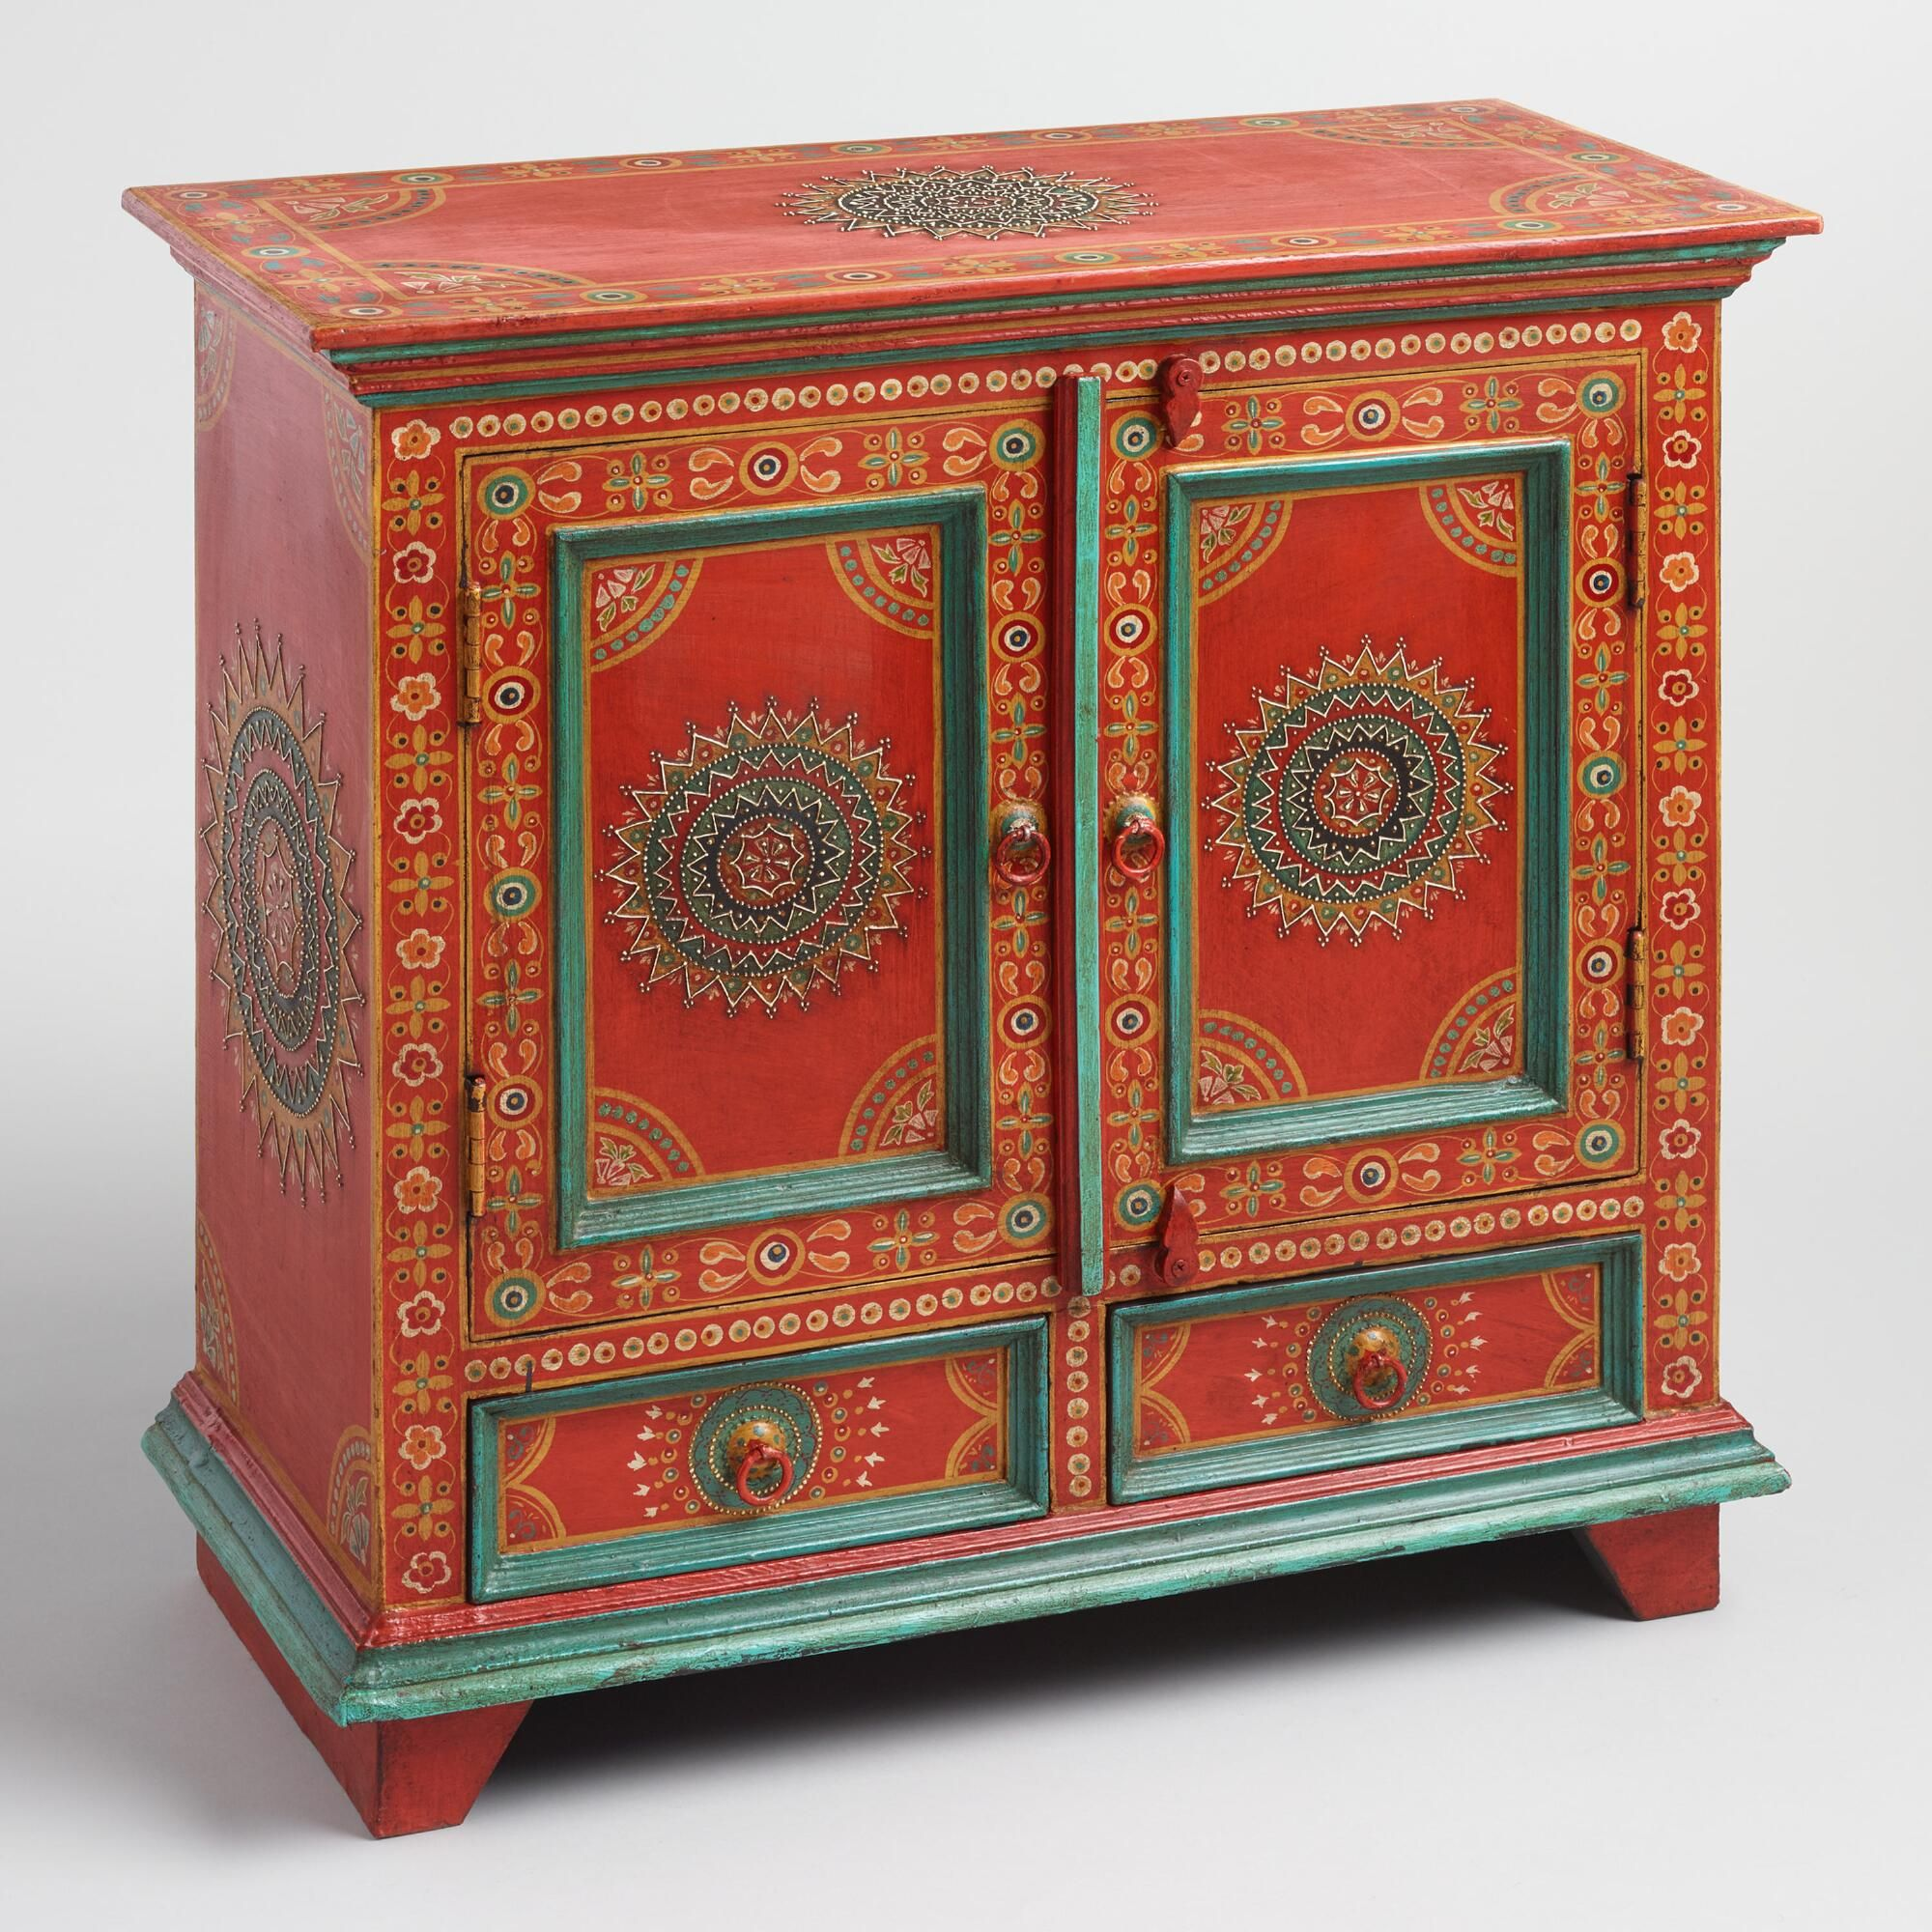 Our Hand Painted Cabinet In Rich Red Is Elaborately Embellished With Traditional  Indian Floral Designs